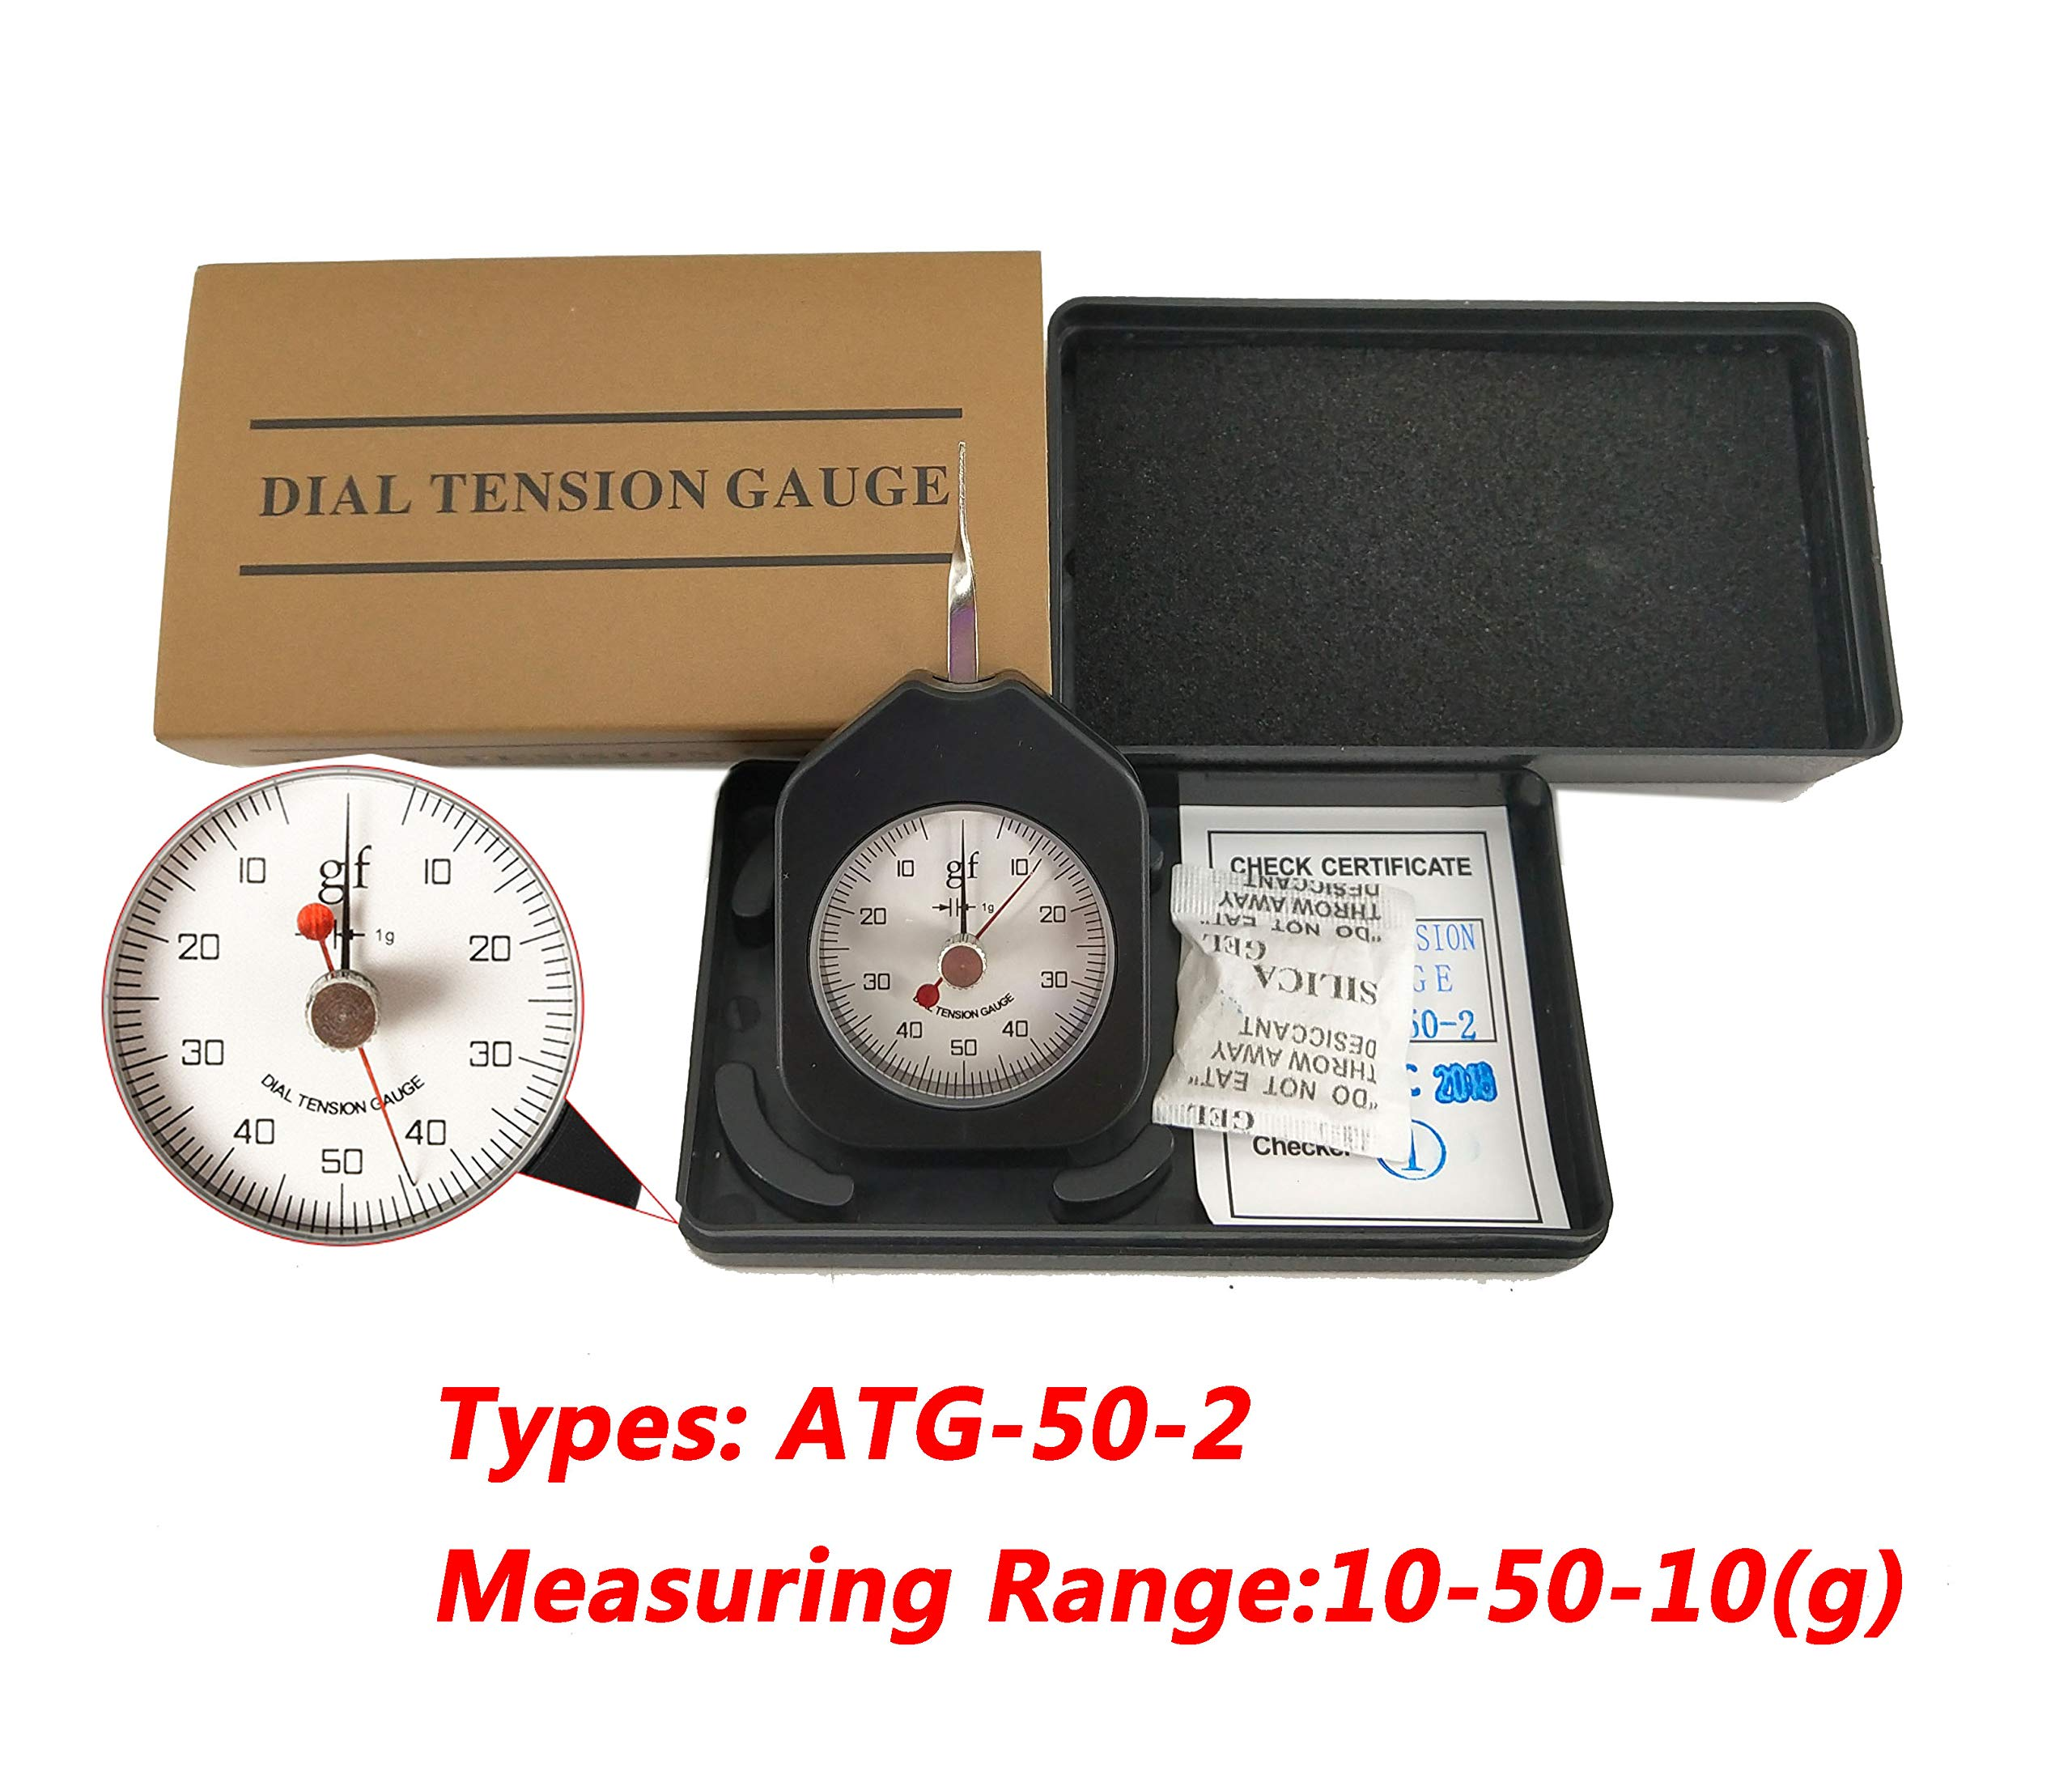 HFBTE ATG-50-2 Double Pointer Dial Tensionmeter with Pocket Size Tension Meter Tester Gauge 50g Max Measured Value by HFBTE